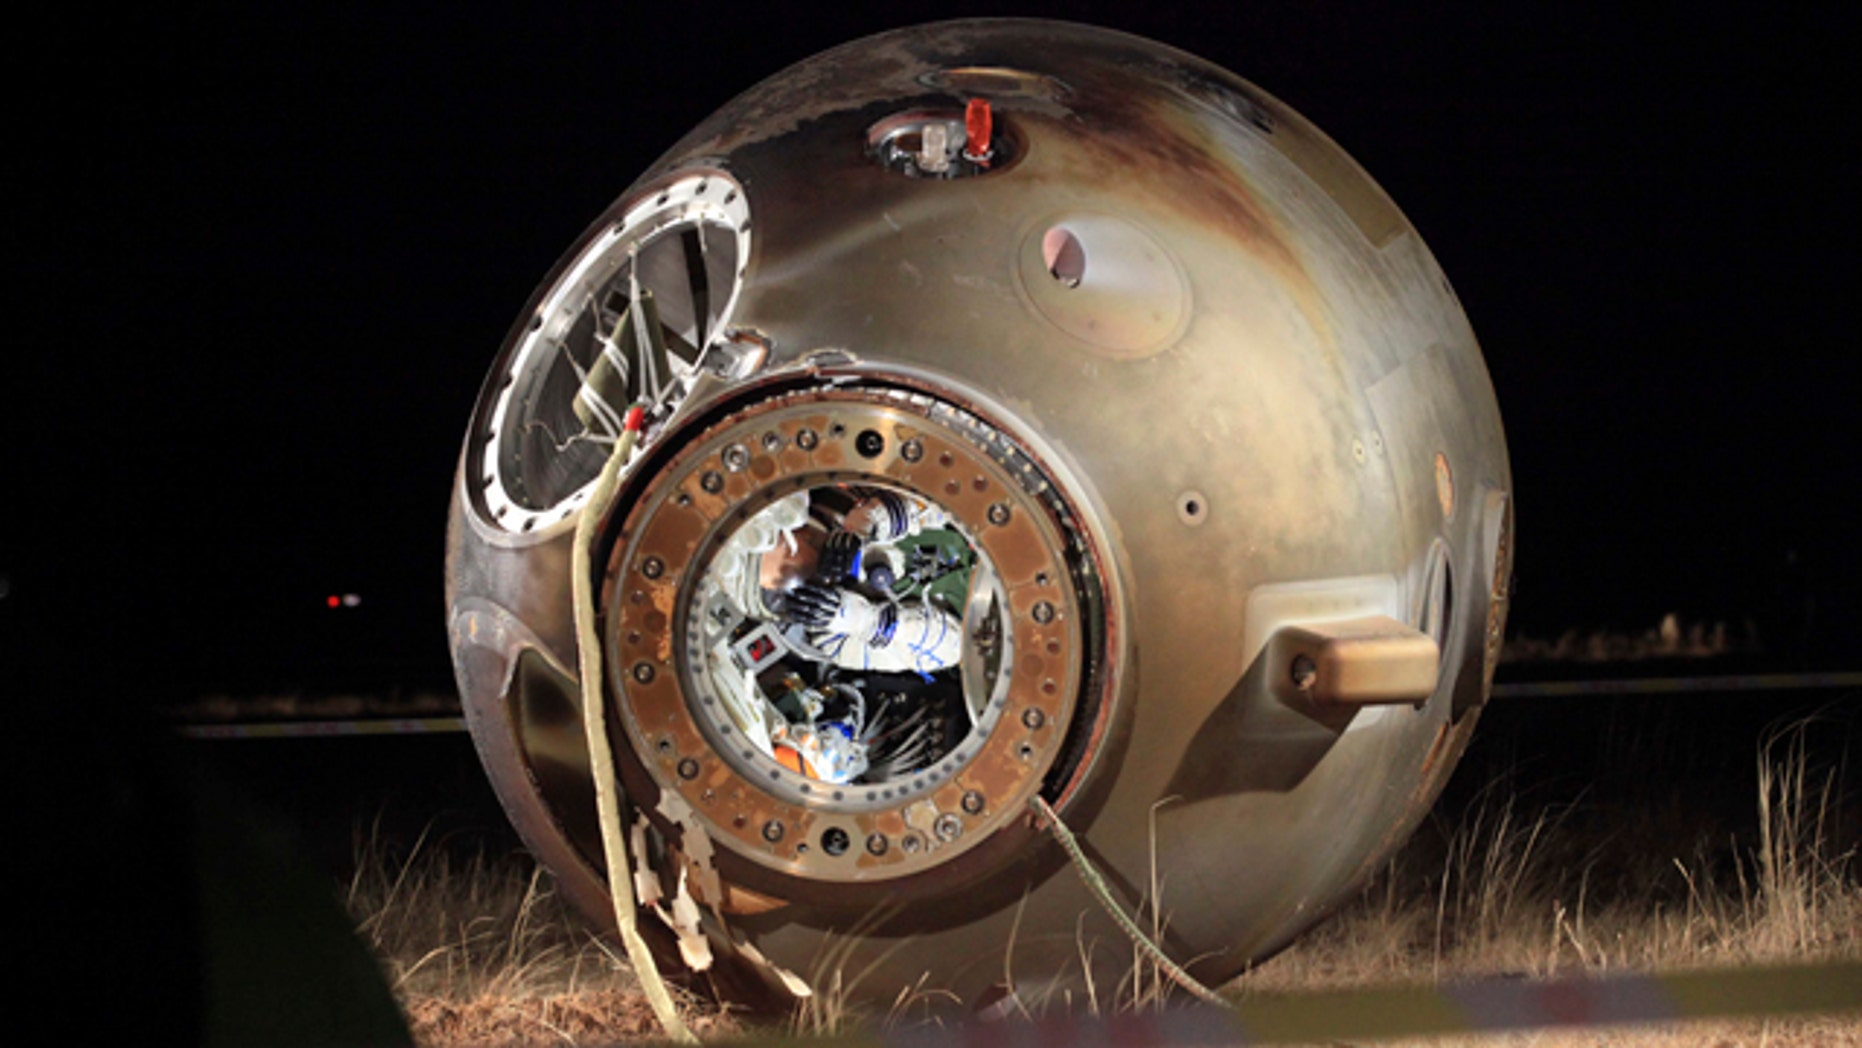 Nov. 17, 2011: A technician inspects the re-entry capsule of China's Shenzhou 8 spacecraft, which lies on its side with its hatch opened at a landing site in Siziwang Banner in north China's Inner Mongolia Autonomous Region. The unmanned Chinese spacecraft returned to Earth on Thursday night after it docked twice with an orbiting module in preparation for the country launching its own space station.